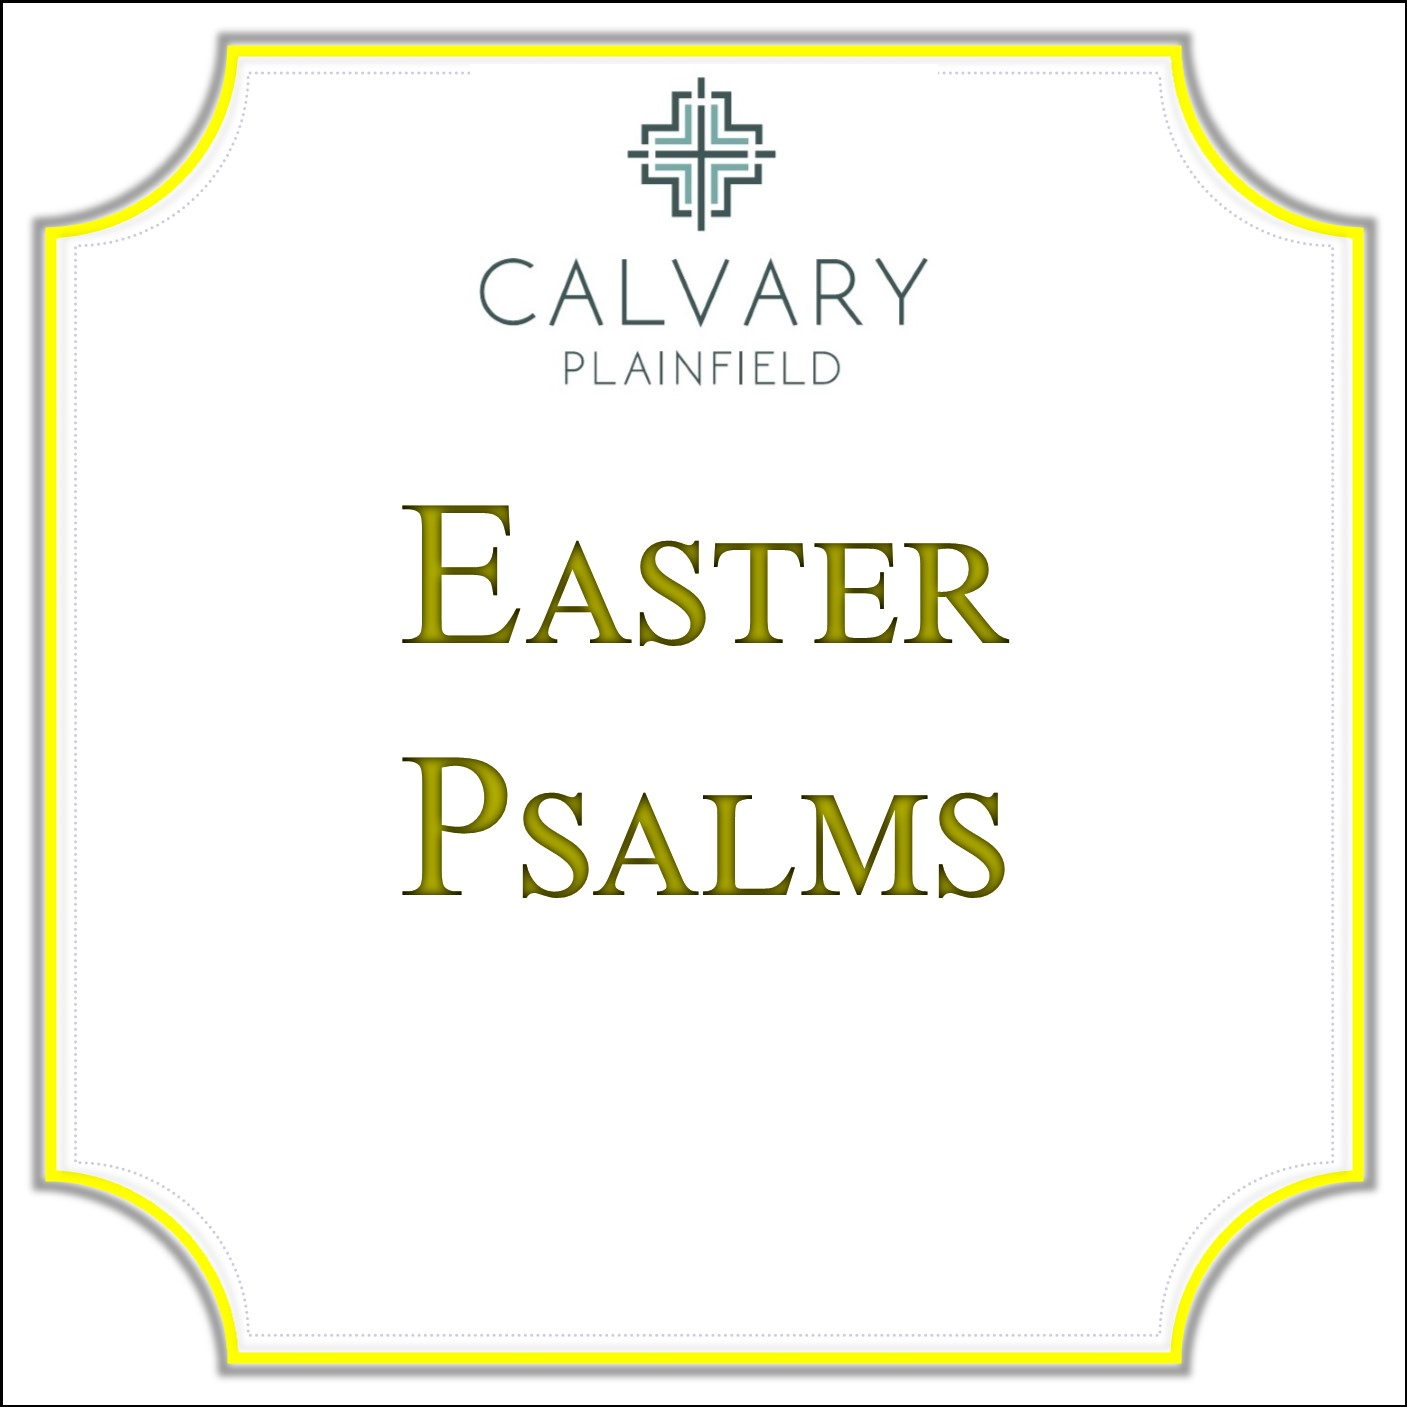 Easter Psalms.jpg